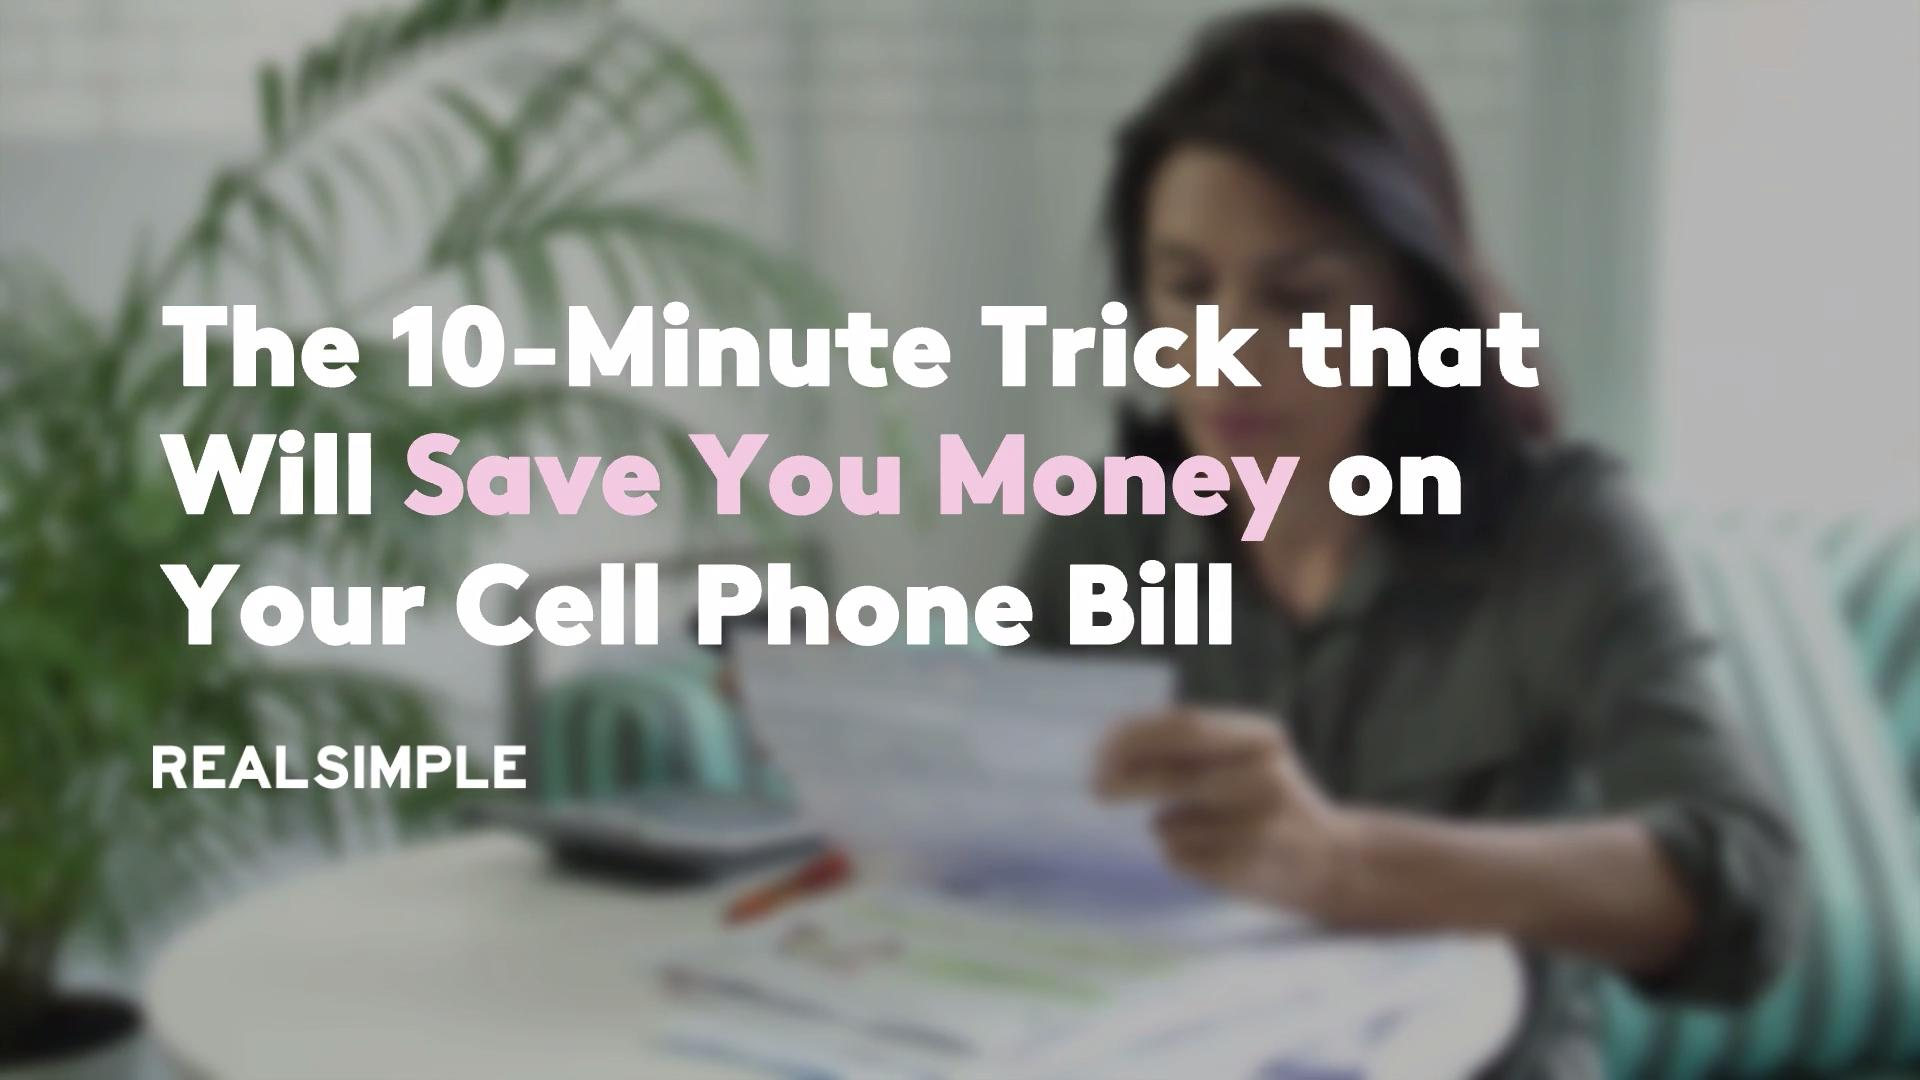 The 10-Minute Trick that Will Save You Money on Your Cell Phone Bill